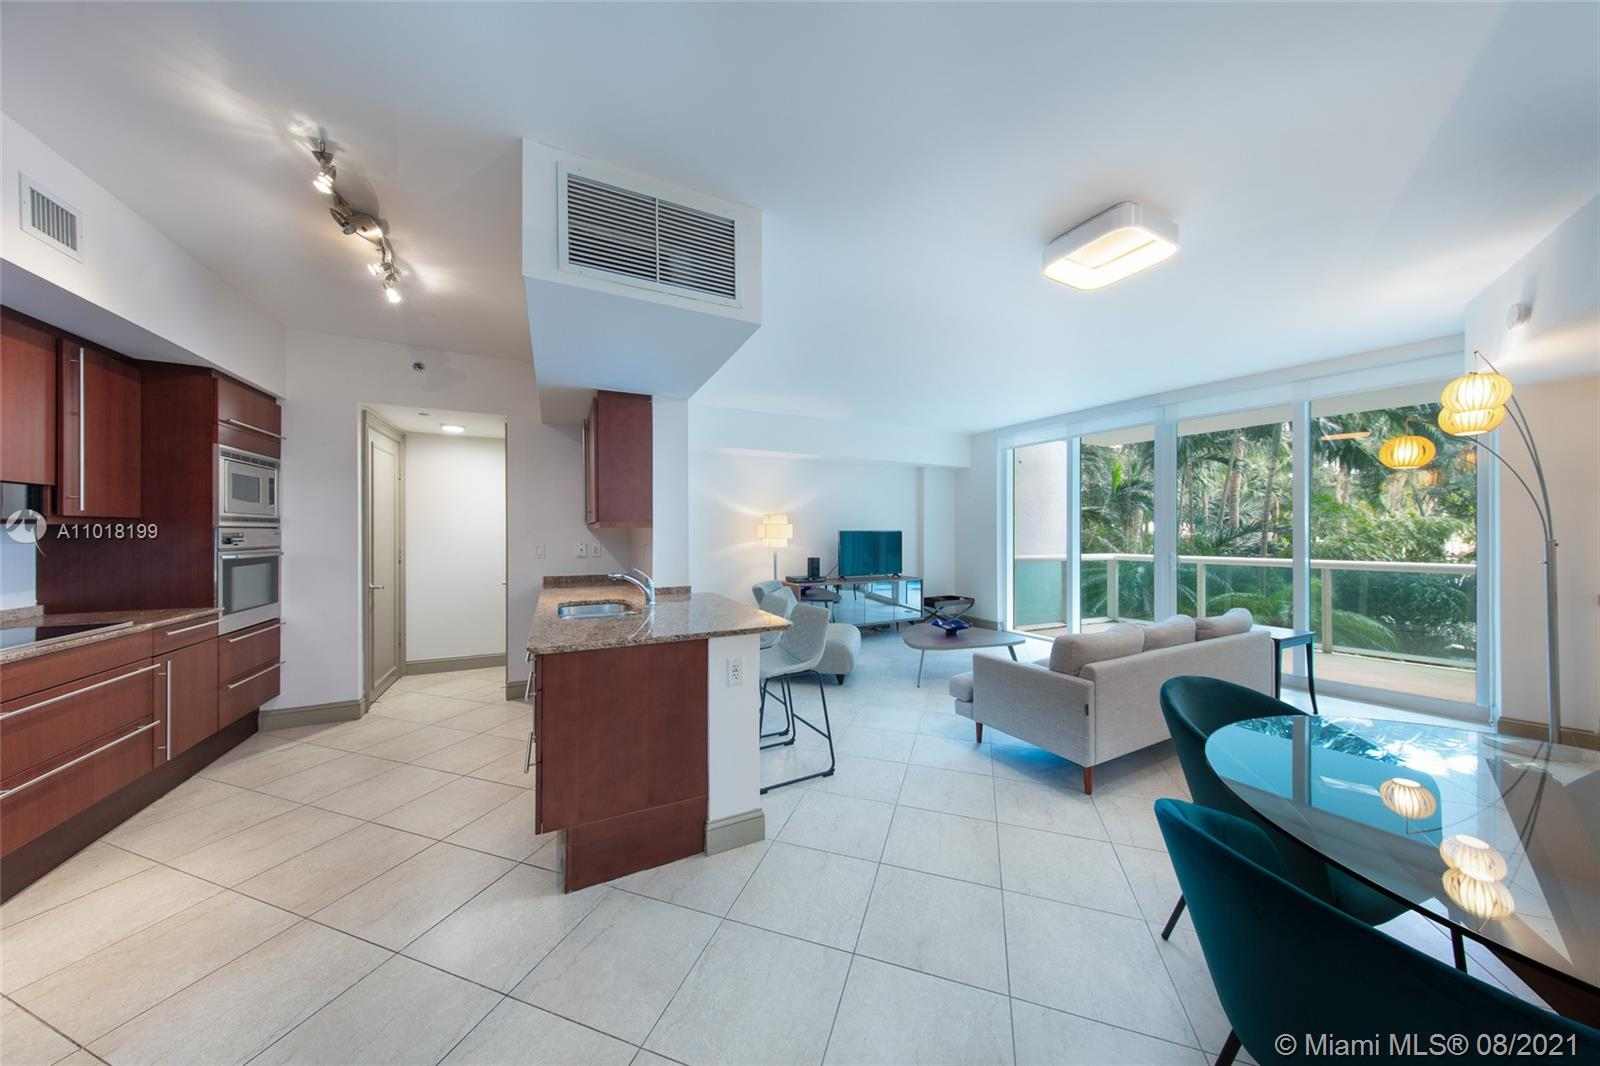 Come live in this in this spacious residence at Murano Portofino in Miami Beach. This 1 bed, 1.5 bathroom condo has a semi-private elevator foyer and quick access to the ground floor. The condo comes turn-key with furniture and electronics. The building is located in the highly desirable South of Fifth area, and close to South Pointe Park. Its five-star amenities include gym, pool and tennis court.